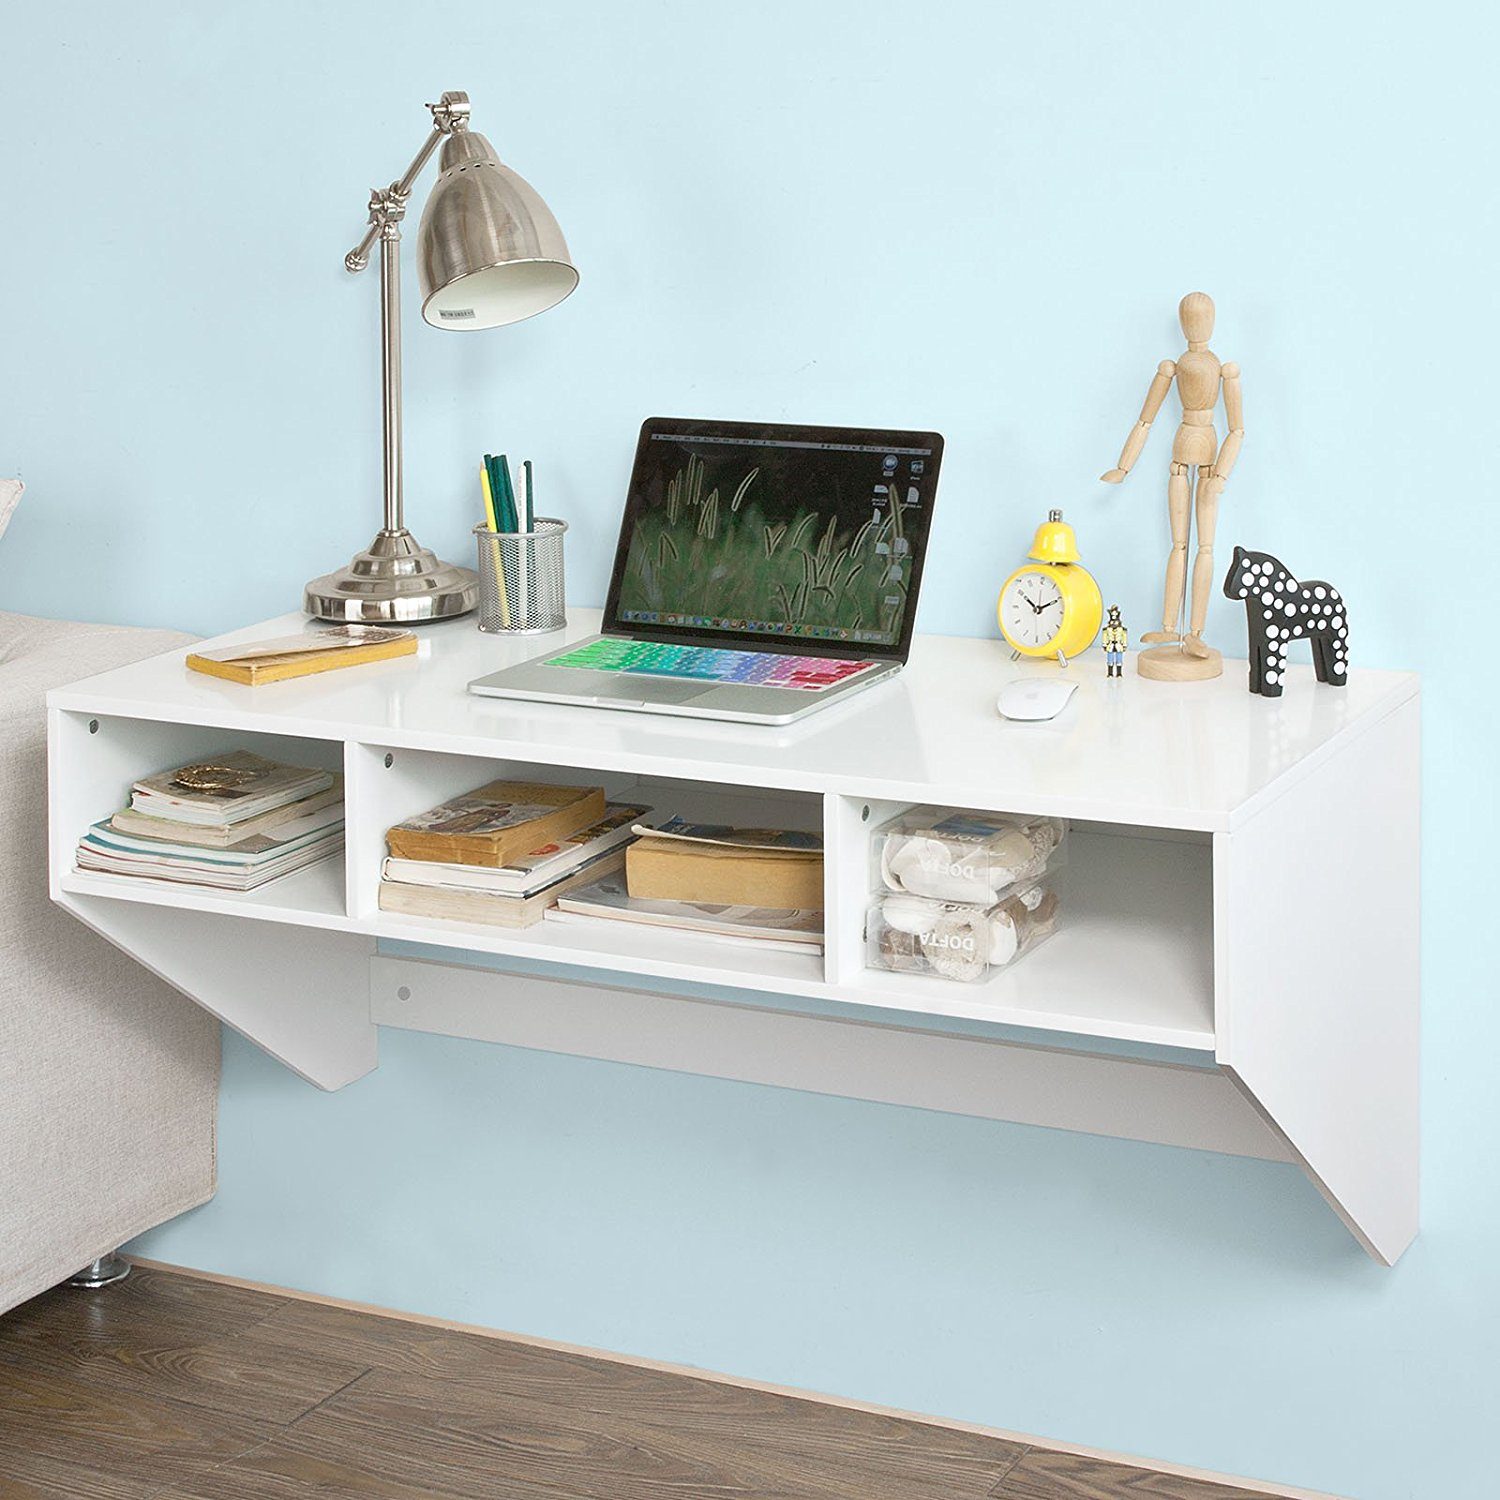 Incroyable Get Quotations · Haotian Wall Mounted Table Desk,Home Office Desk  Workstation,Floating Desk With Storage